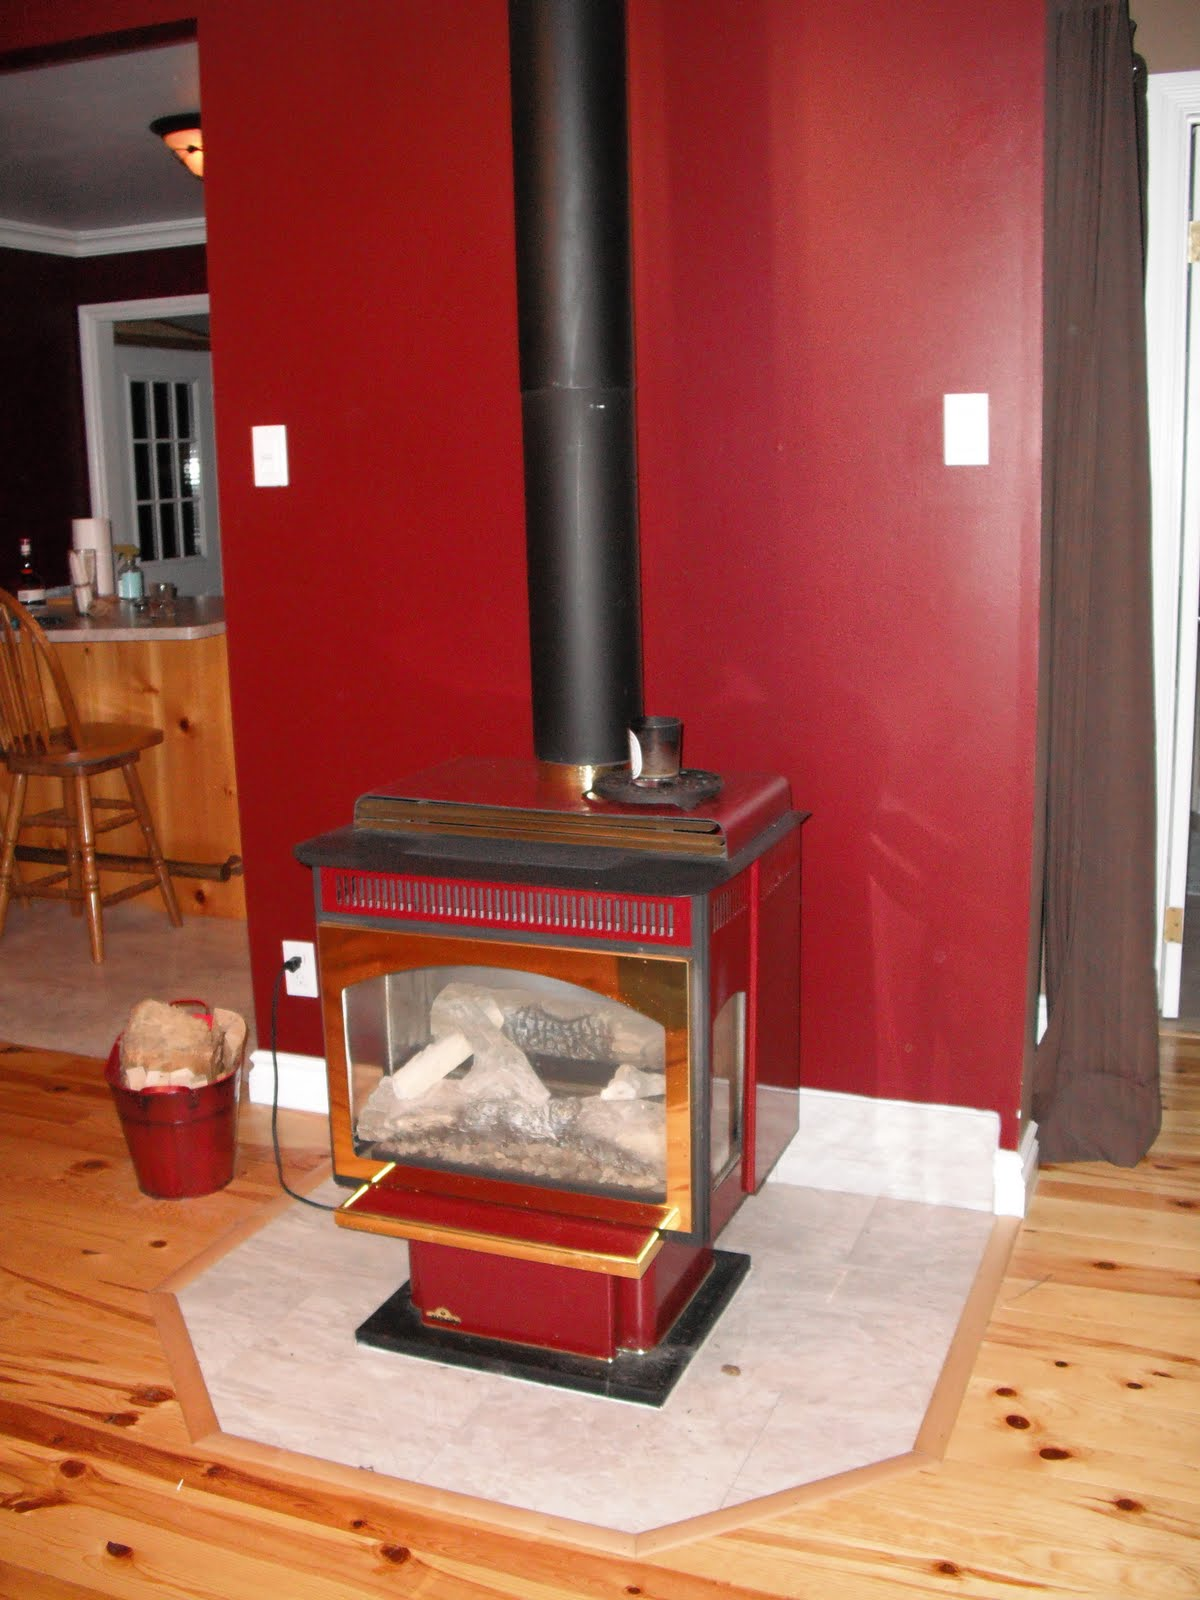 Wood Stove shiny. - Studio Blog €� Muddaritaville Studio